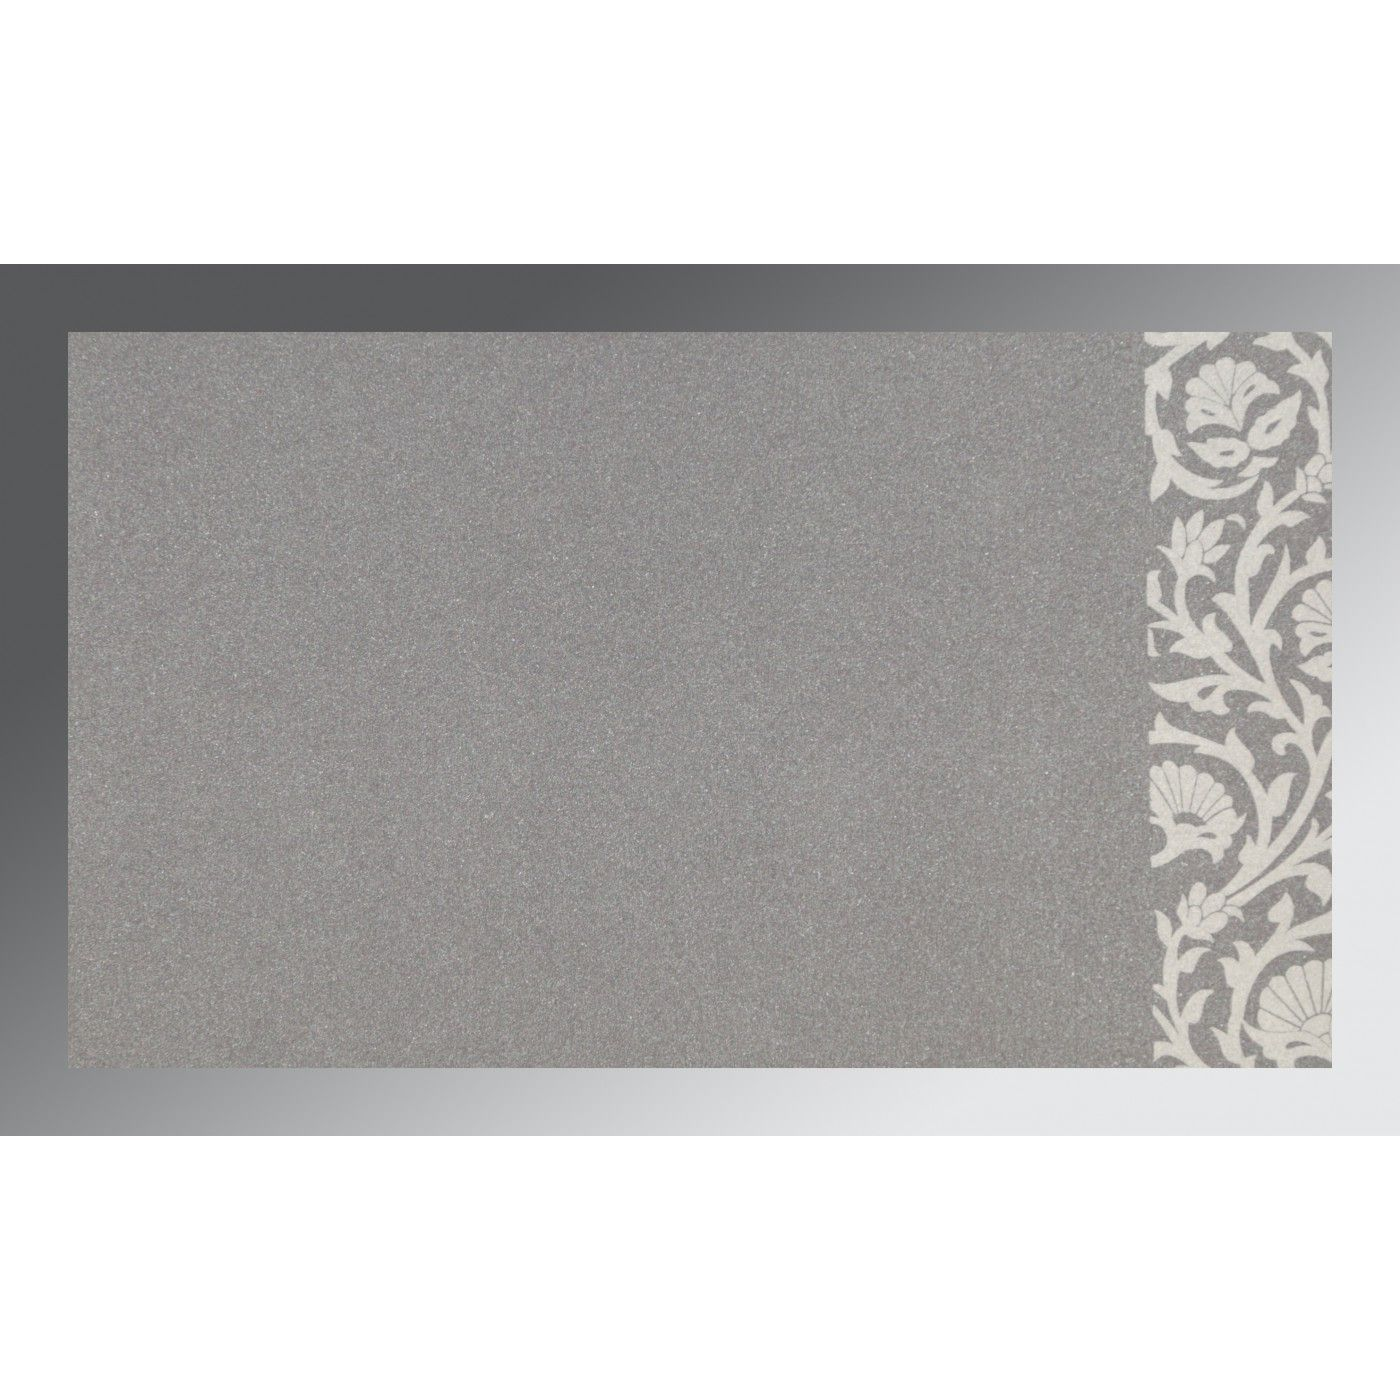 GREY SCREEN PRINTED WEDDING INVITATION : CD-1371 - IndianWeddingCards